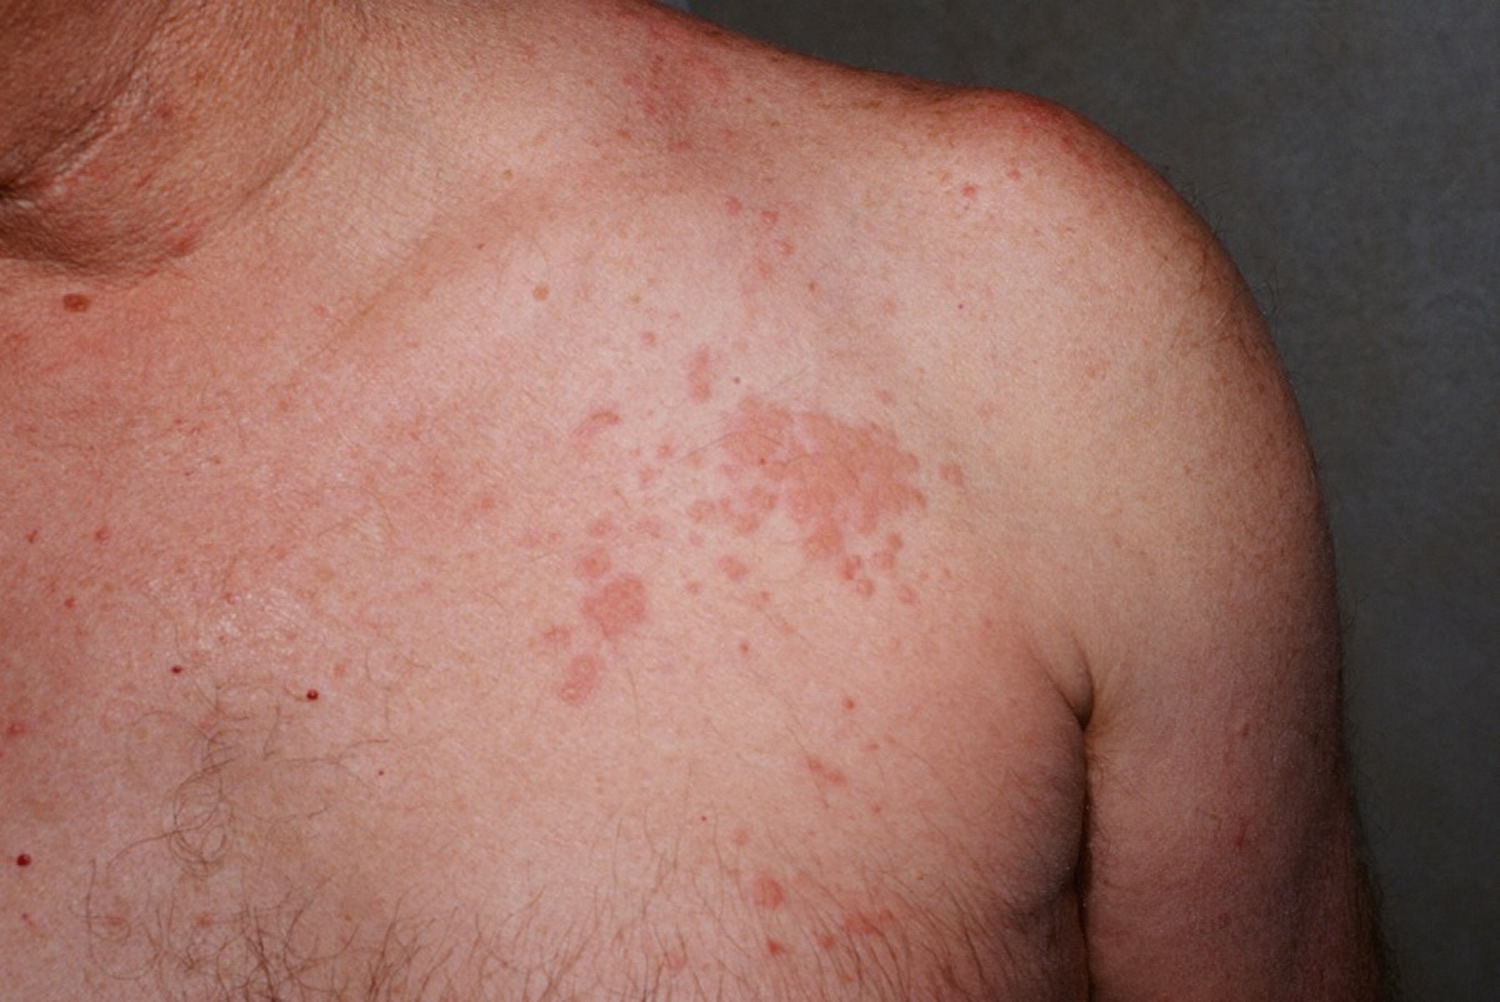 Churg-Strauss syndrome skin rash